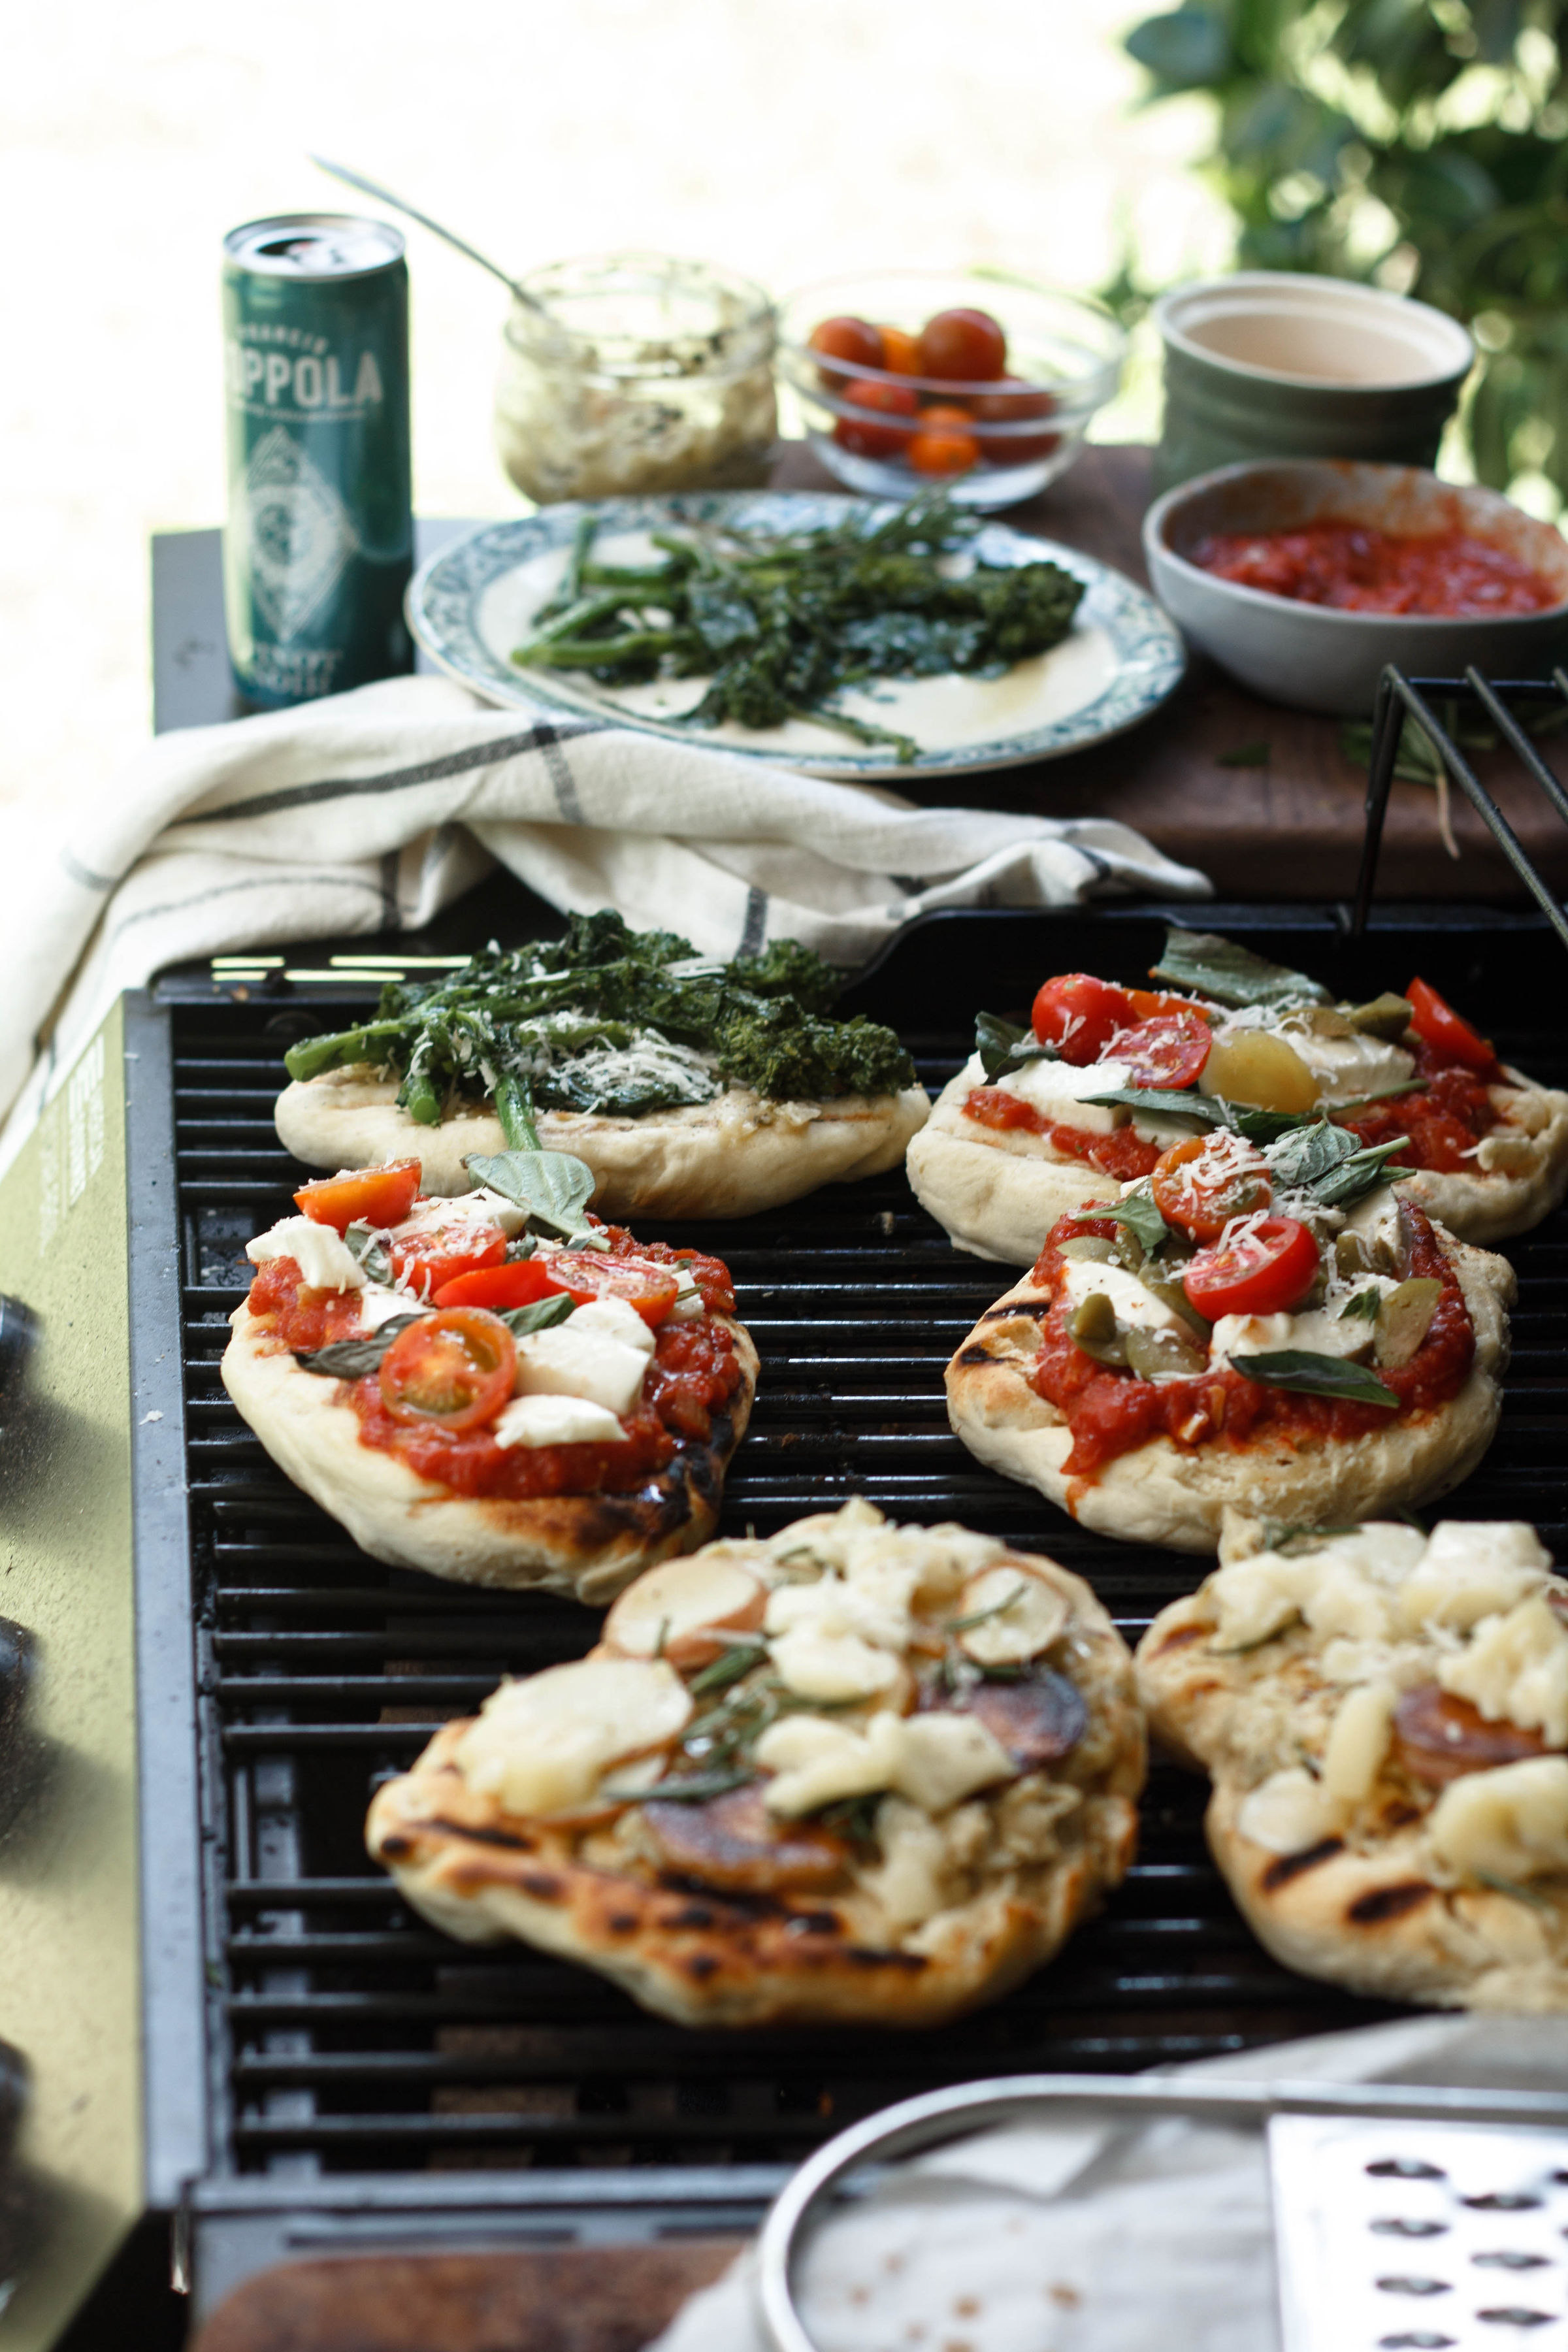 Small pizzas with toppings on a grill.